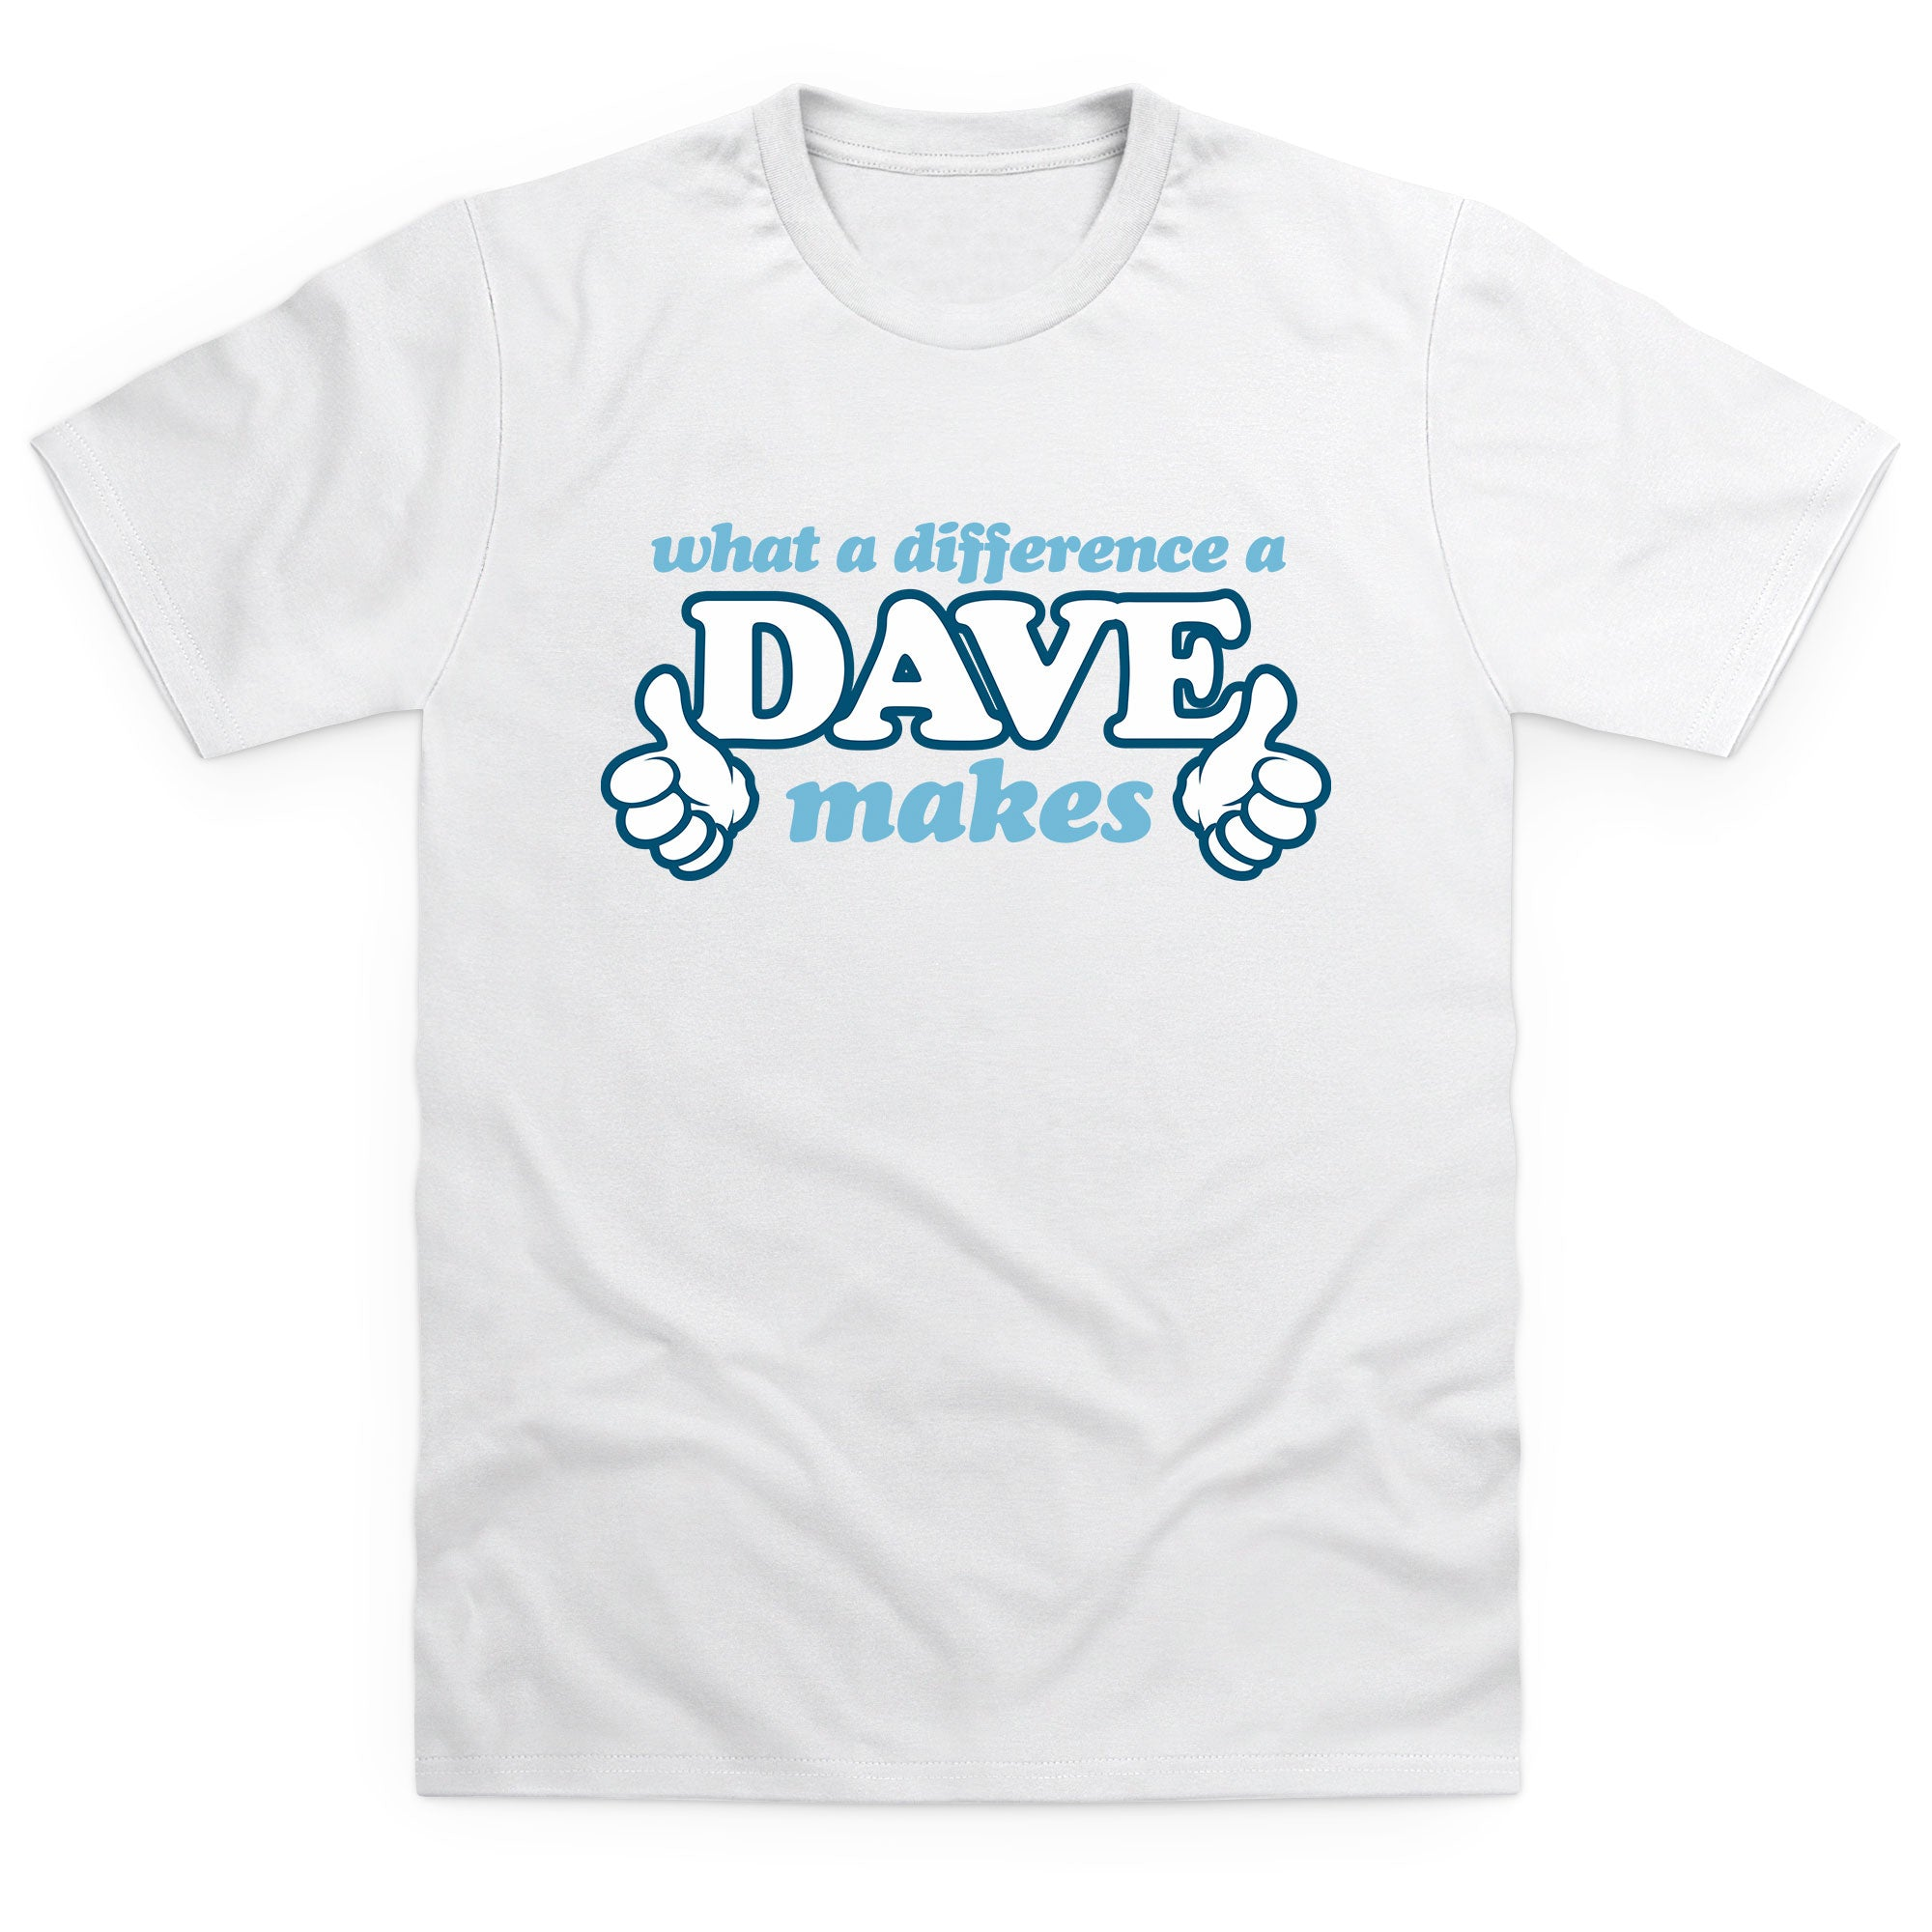 CHEAP What A Difference A Dave Makes Kid's T Shirt 25874570563 – Clothing Accessories